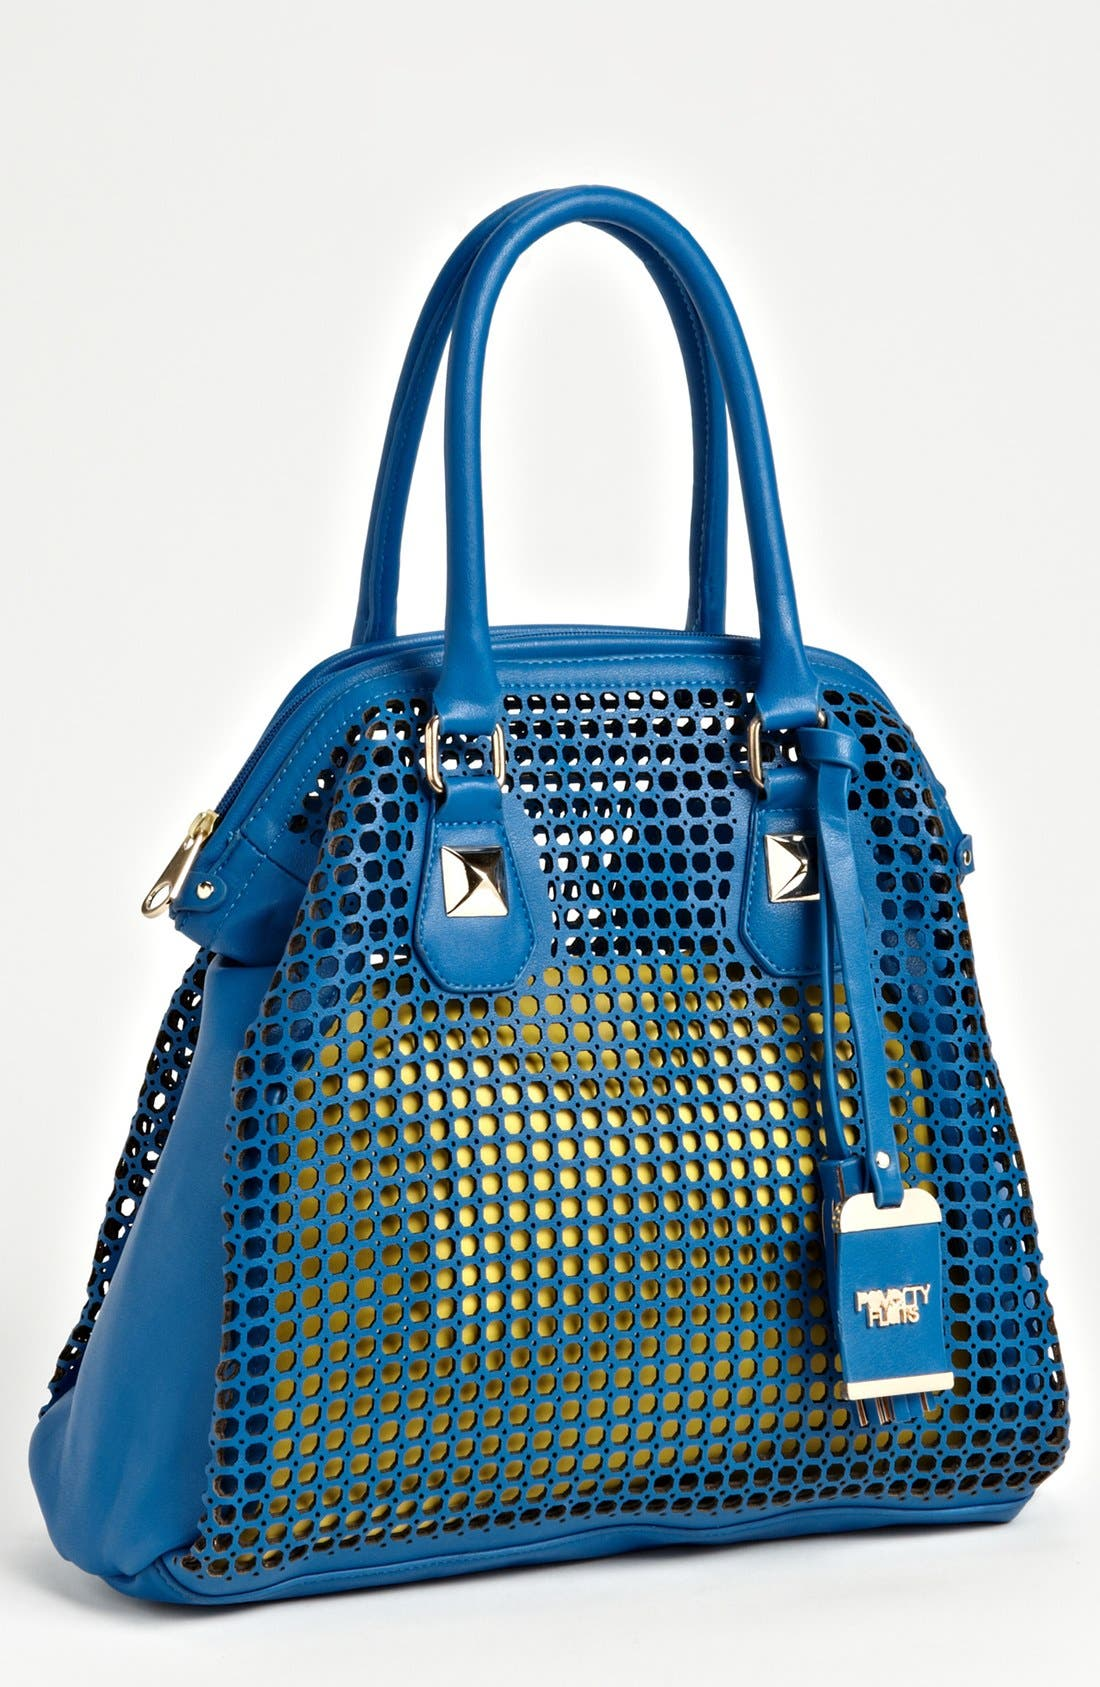 Alternate Image 1 Selected - POVERTY FLATS by rian Perforated Faux Leather Shoulder Bag